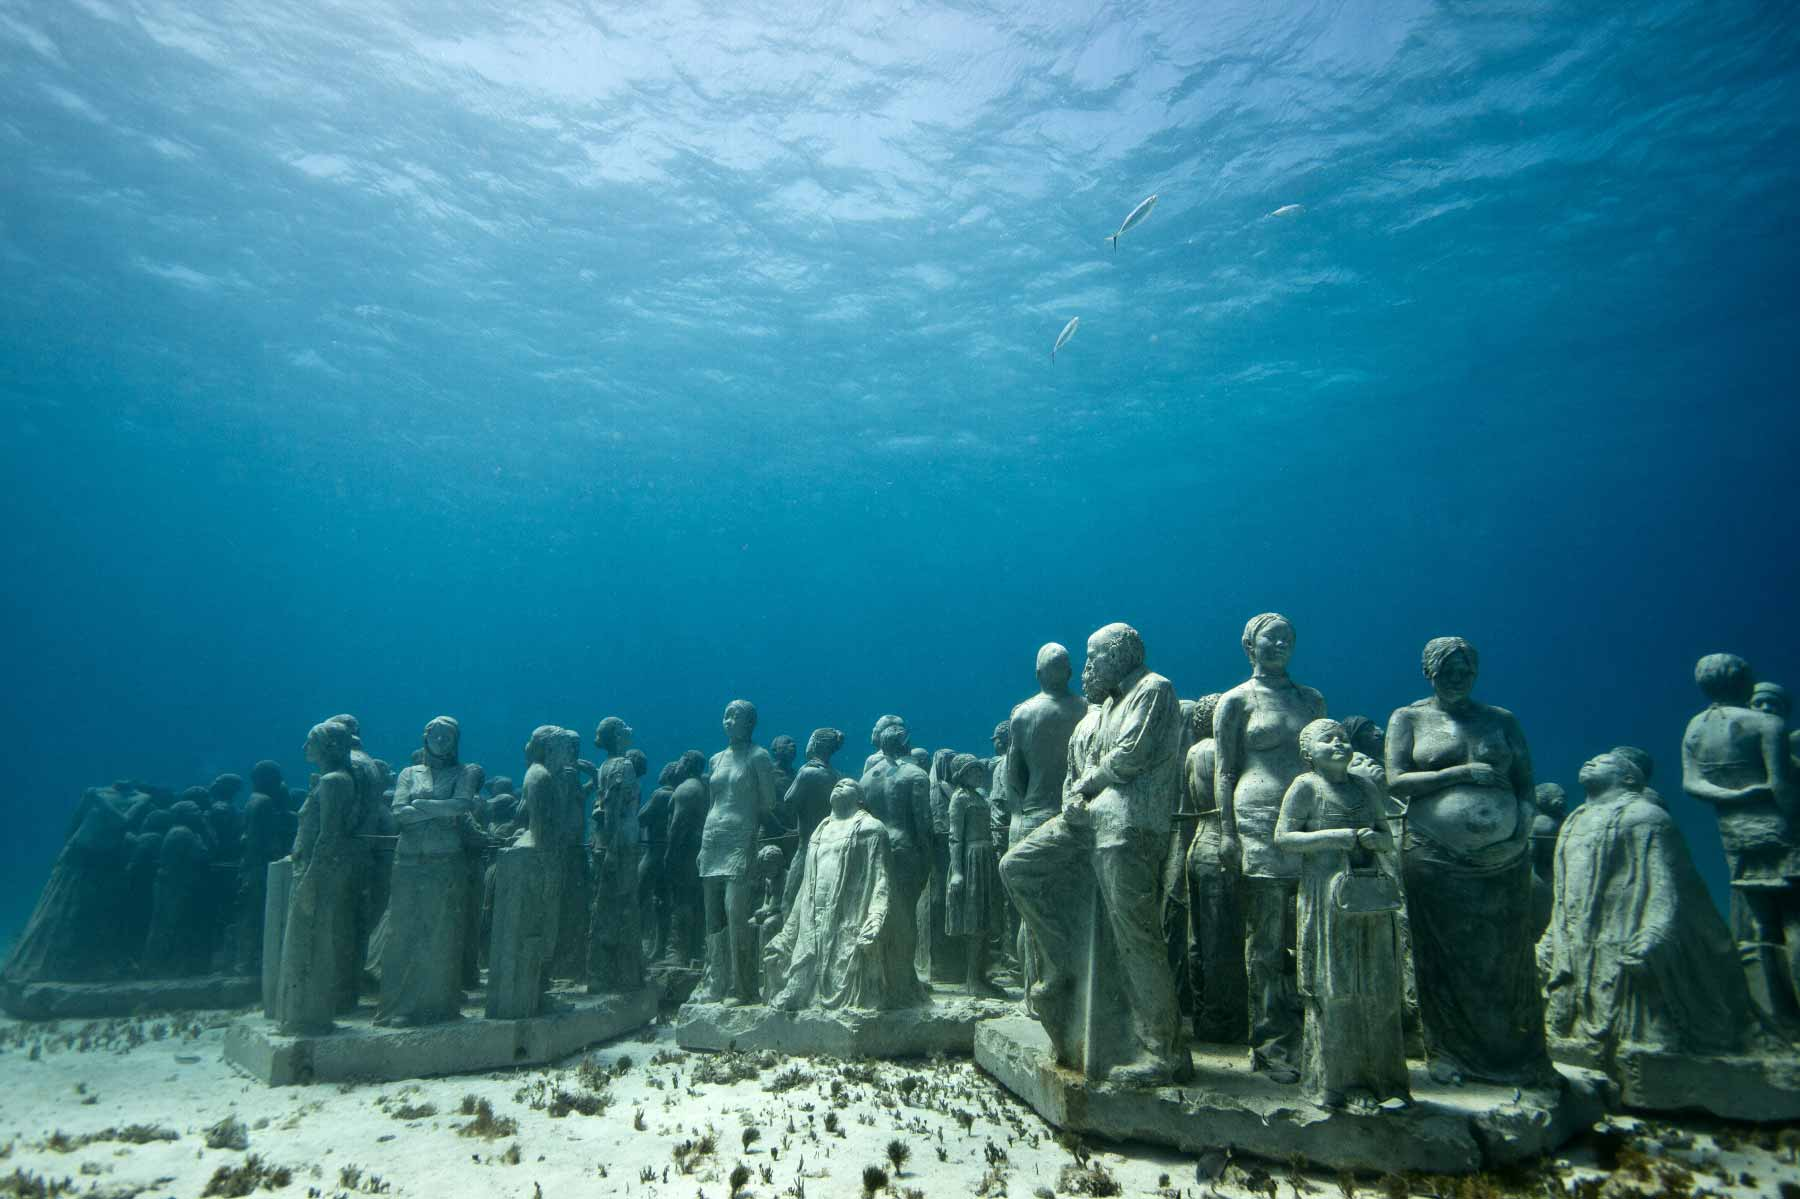 The-Silent-Evolution-in-Manchones-by-Jason-deCaires-Taylor